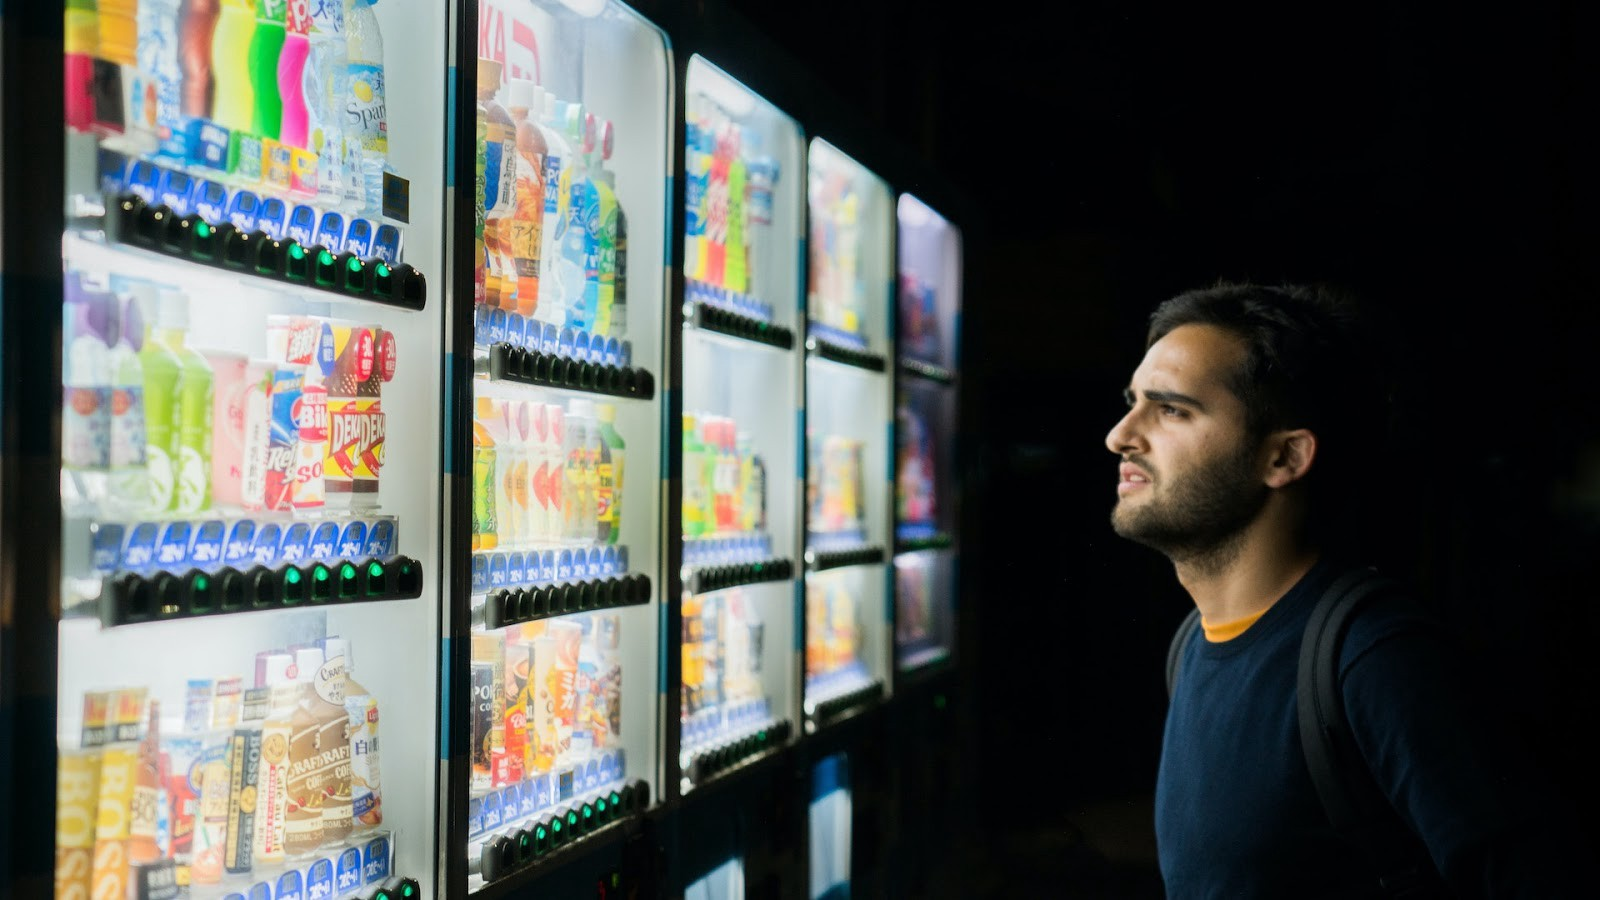 A man choosing a drink from 5 different Japanese vending machines